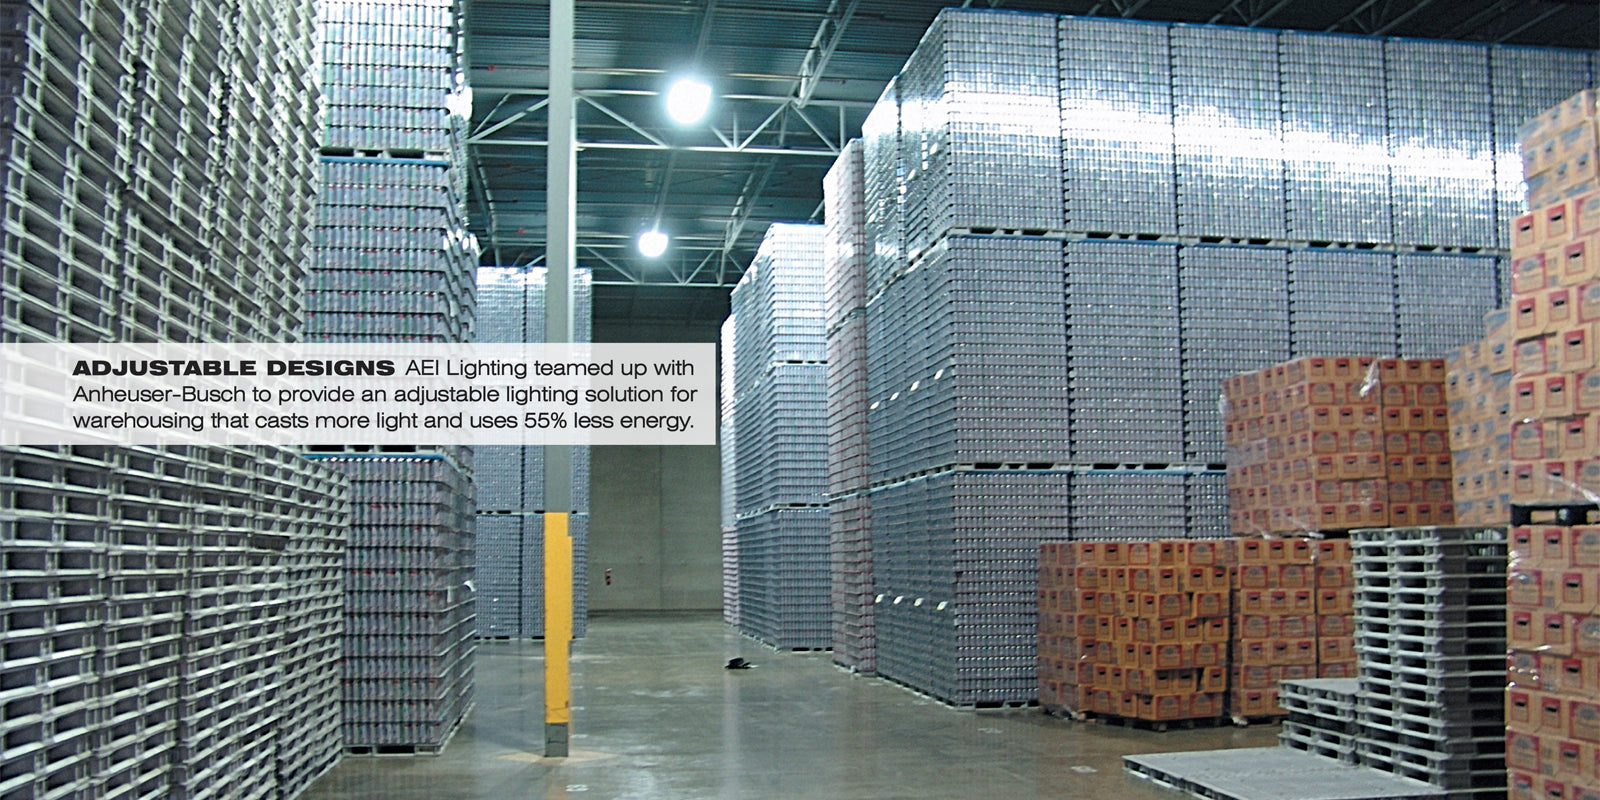 AEI Lighting Works With Fossil To Save Energy By Using T5 Fluorescent Industrial Lighting Fixtures and Skylights in its Distribution Center